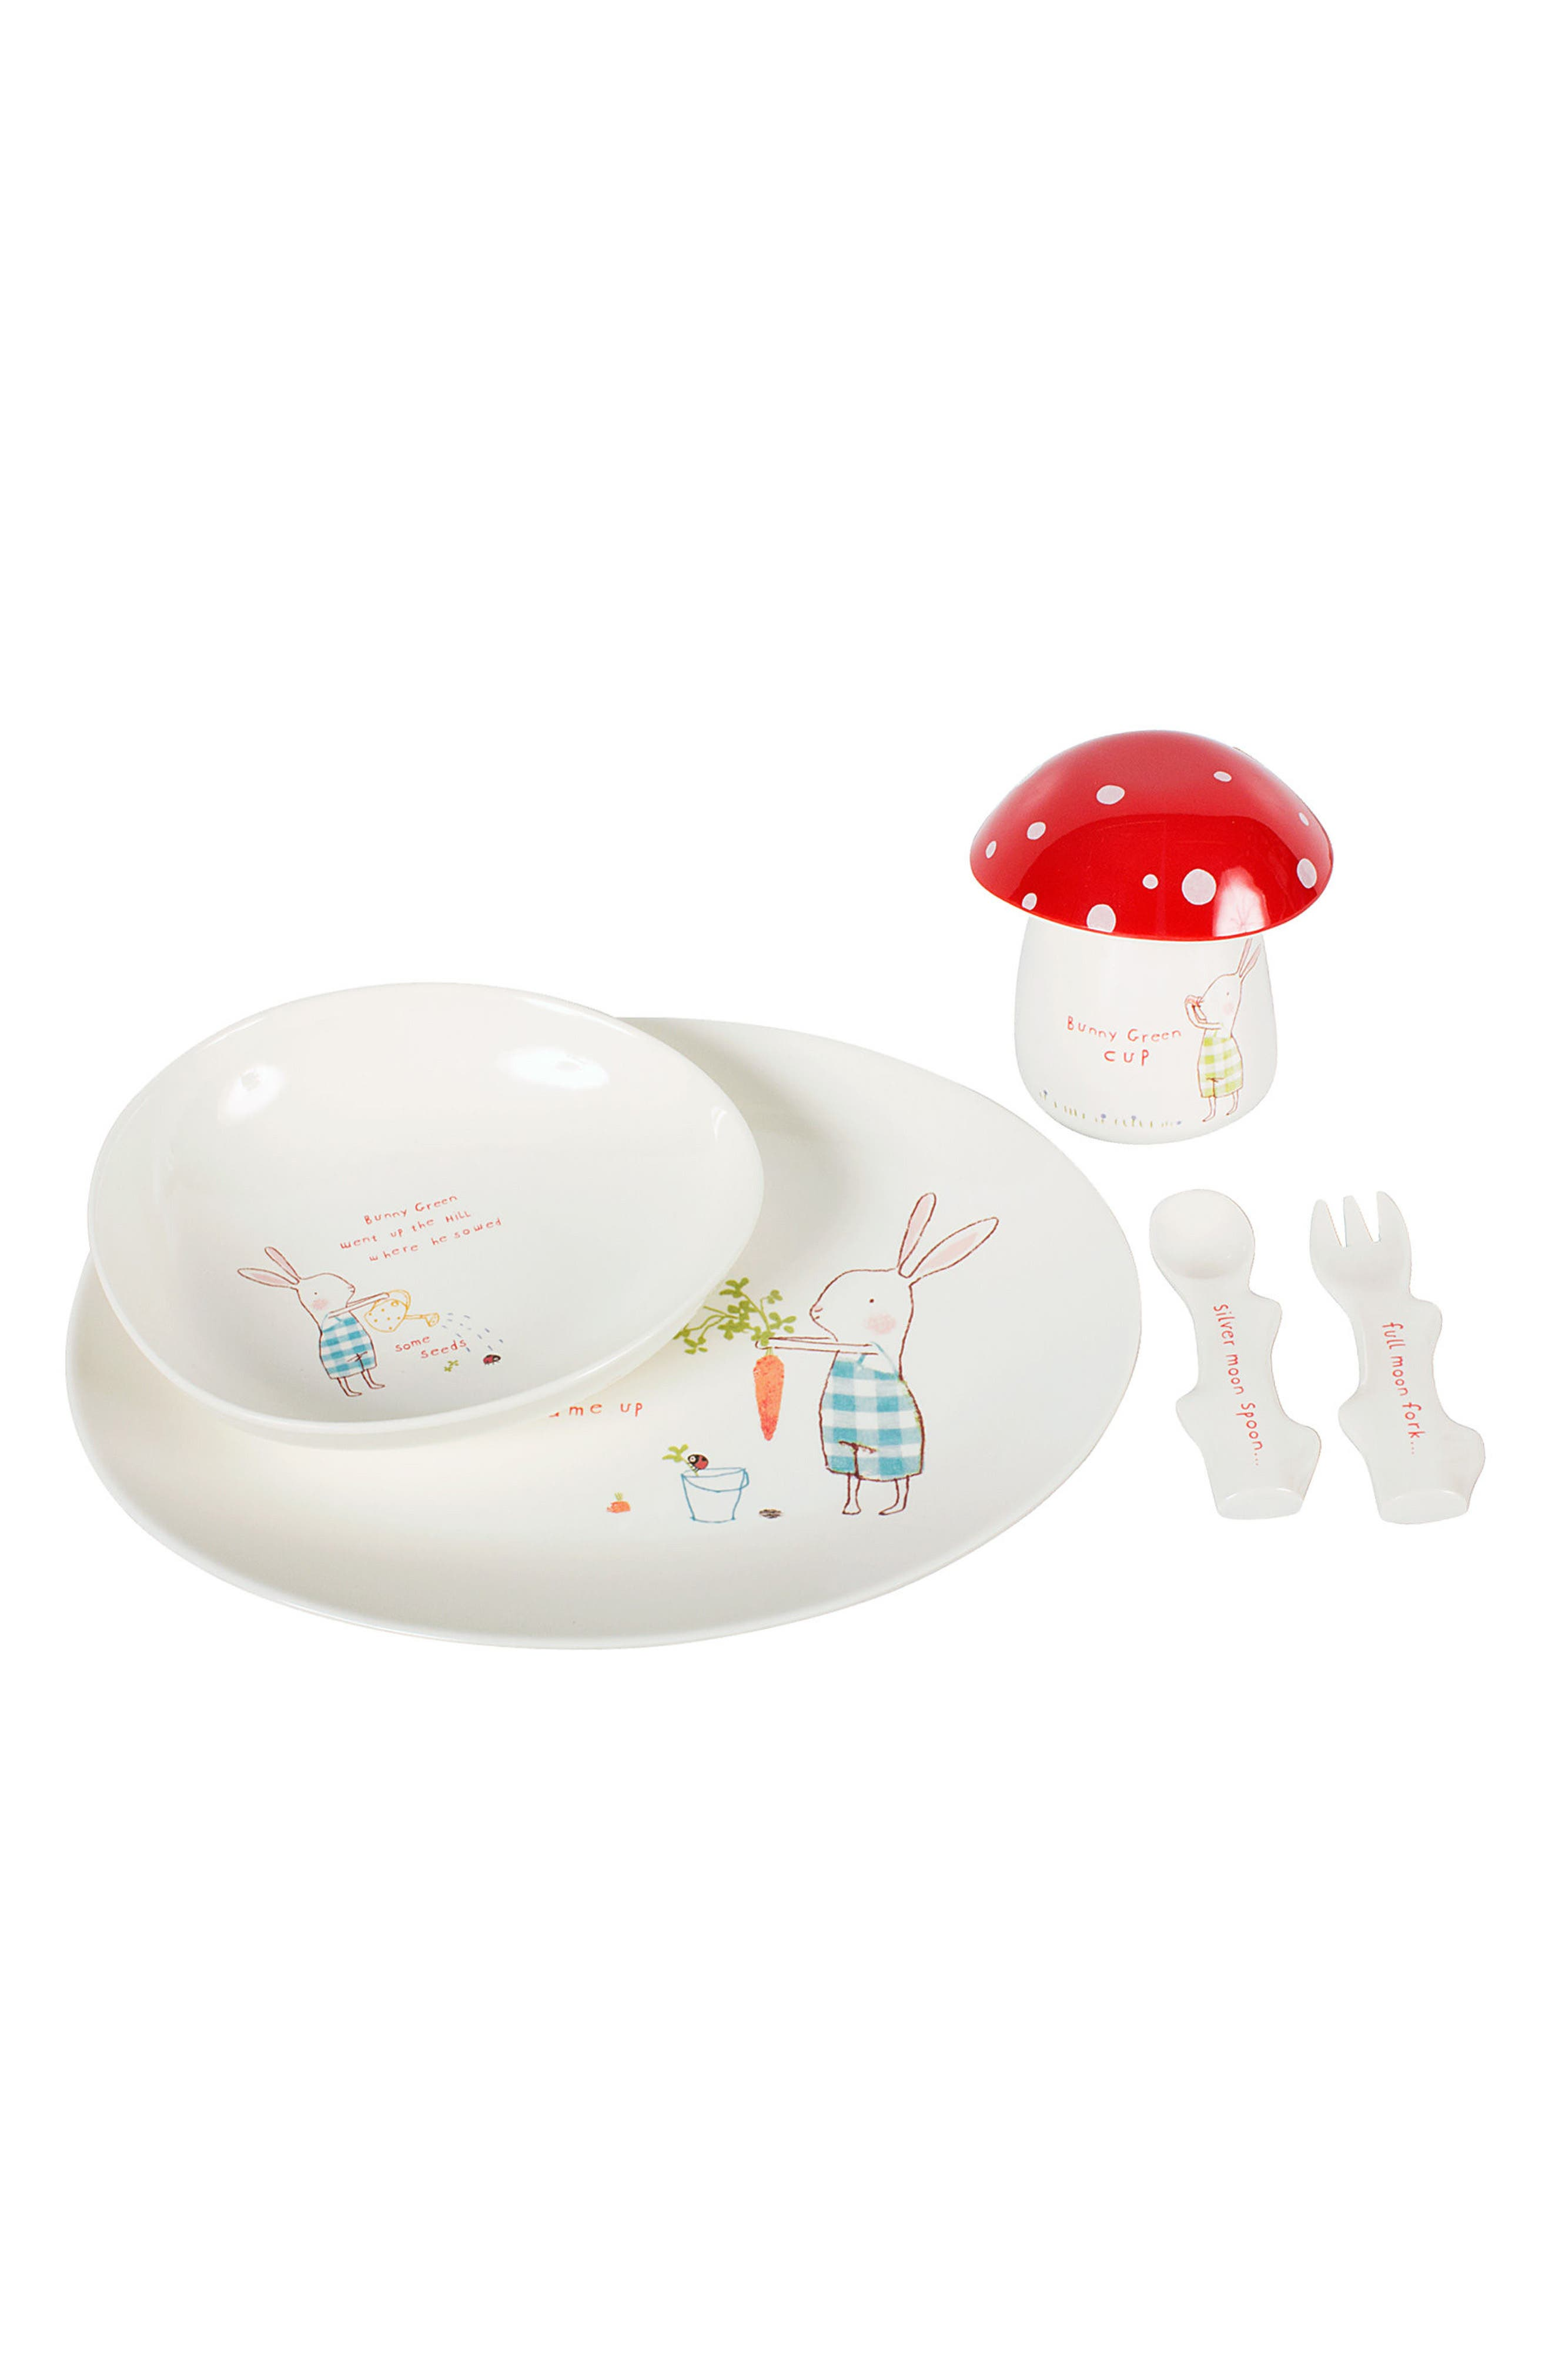 Bunny Green Print Melamine Six-Piece Dishes Set,                         Main,                         color, IVORY